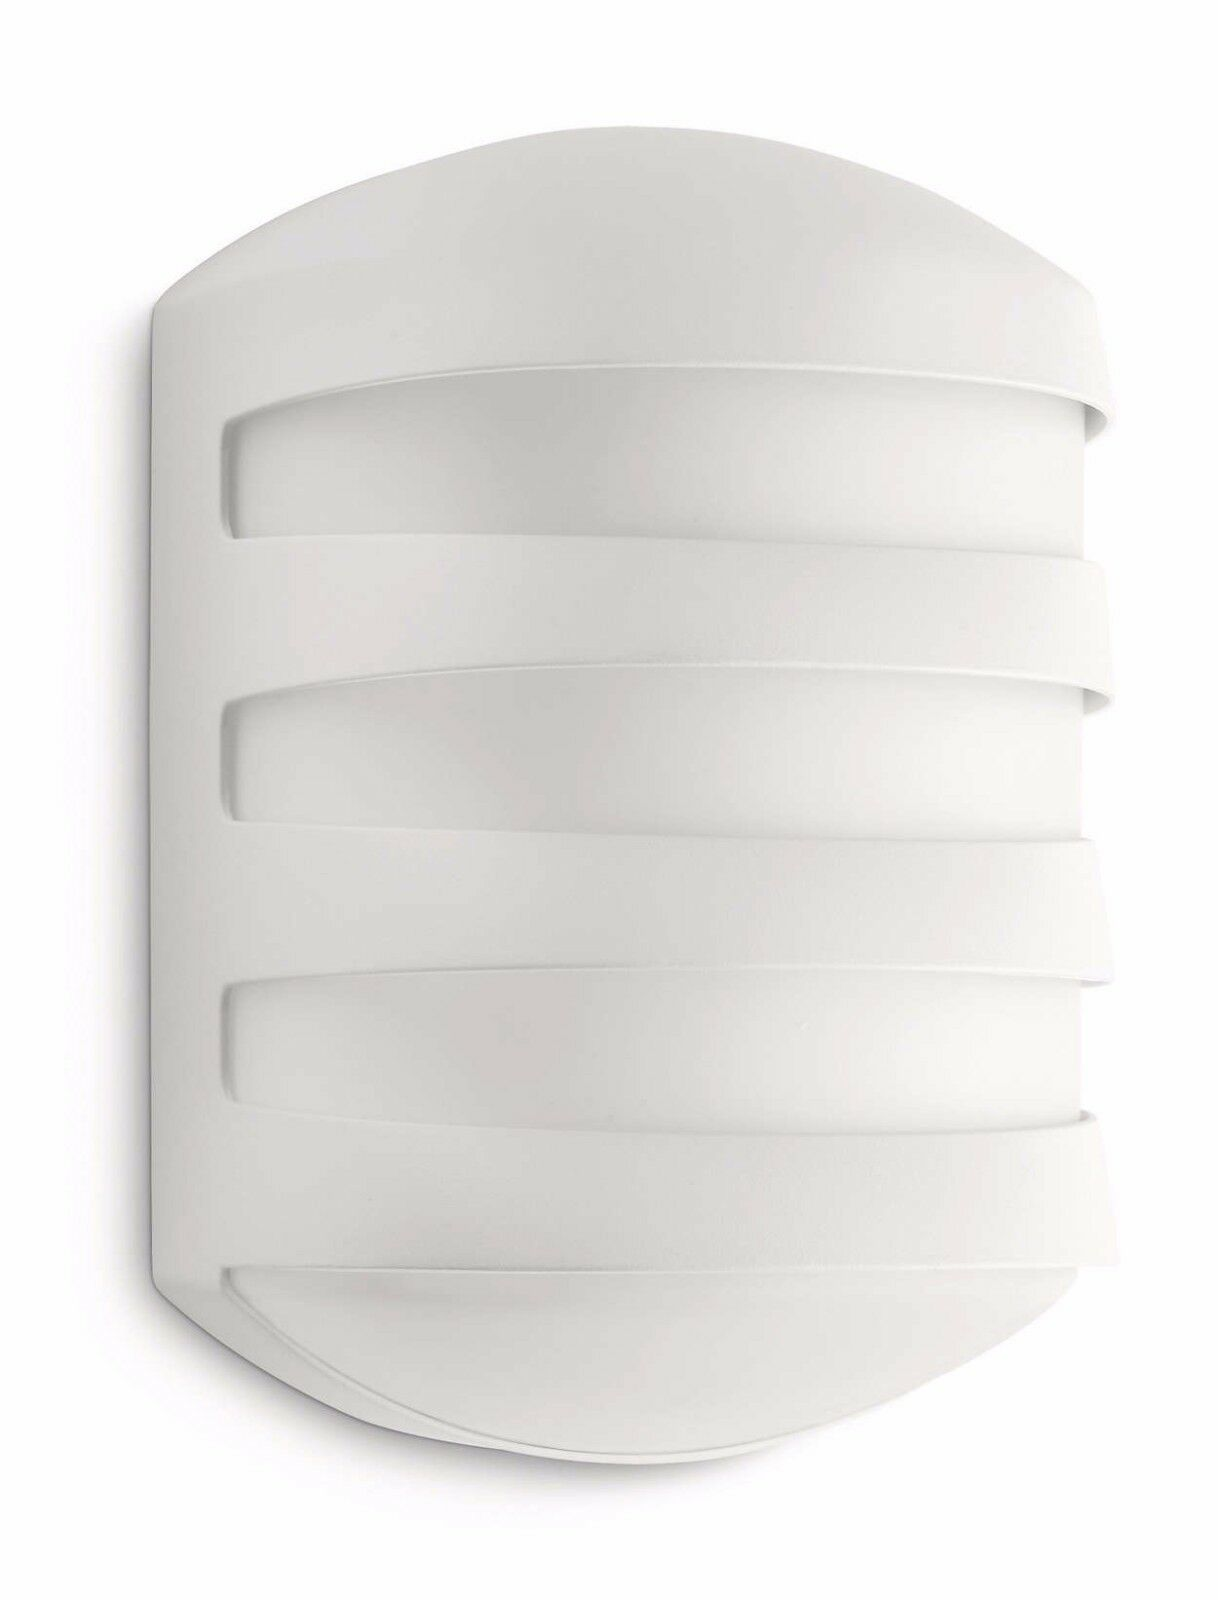 Philips Ecomoods Philips Ecomoods Foliage Outdoor Wall Light White Includes 1 X 20 Watts E27 Bulb